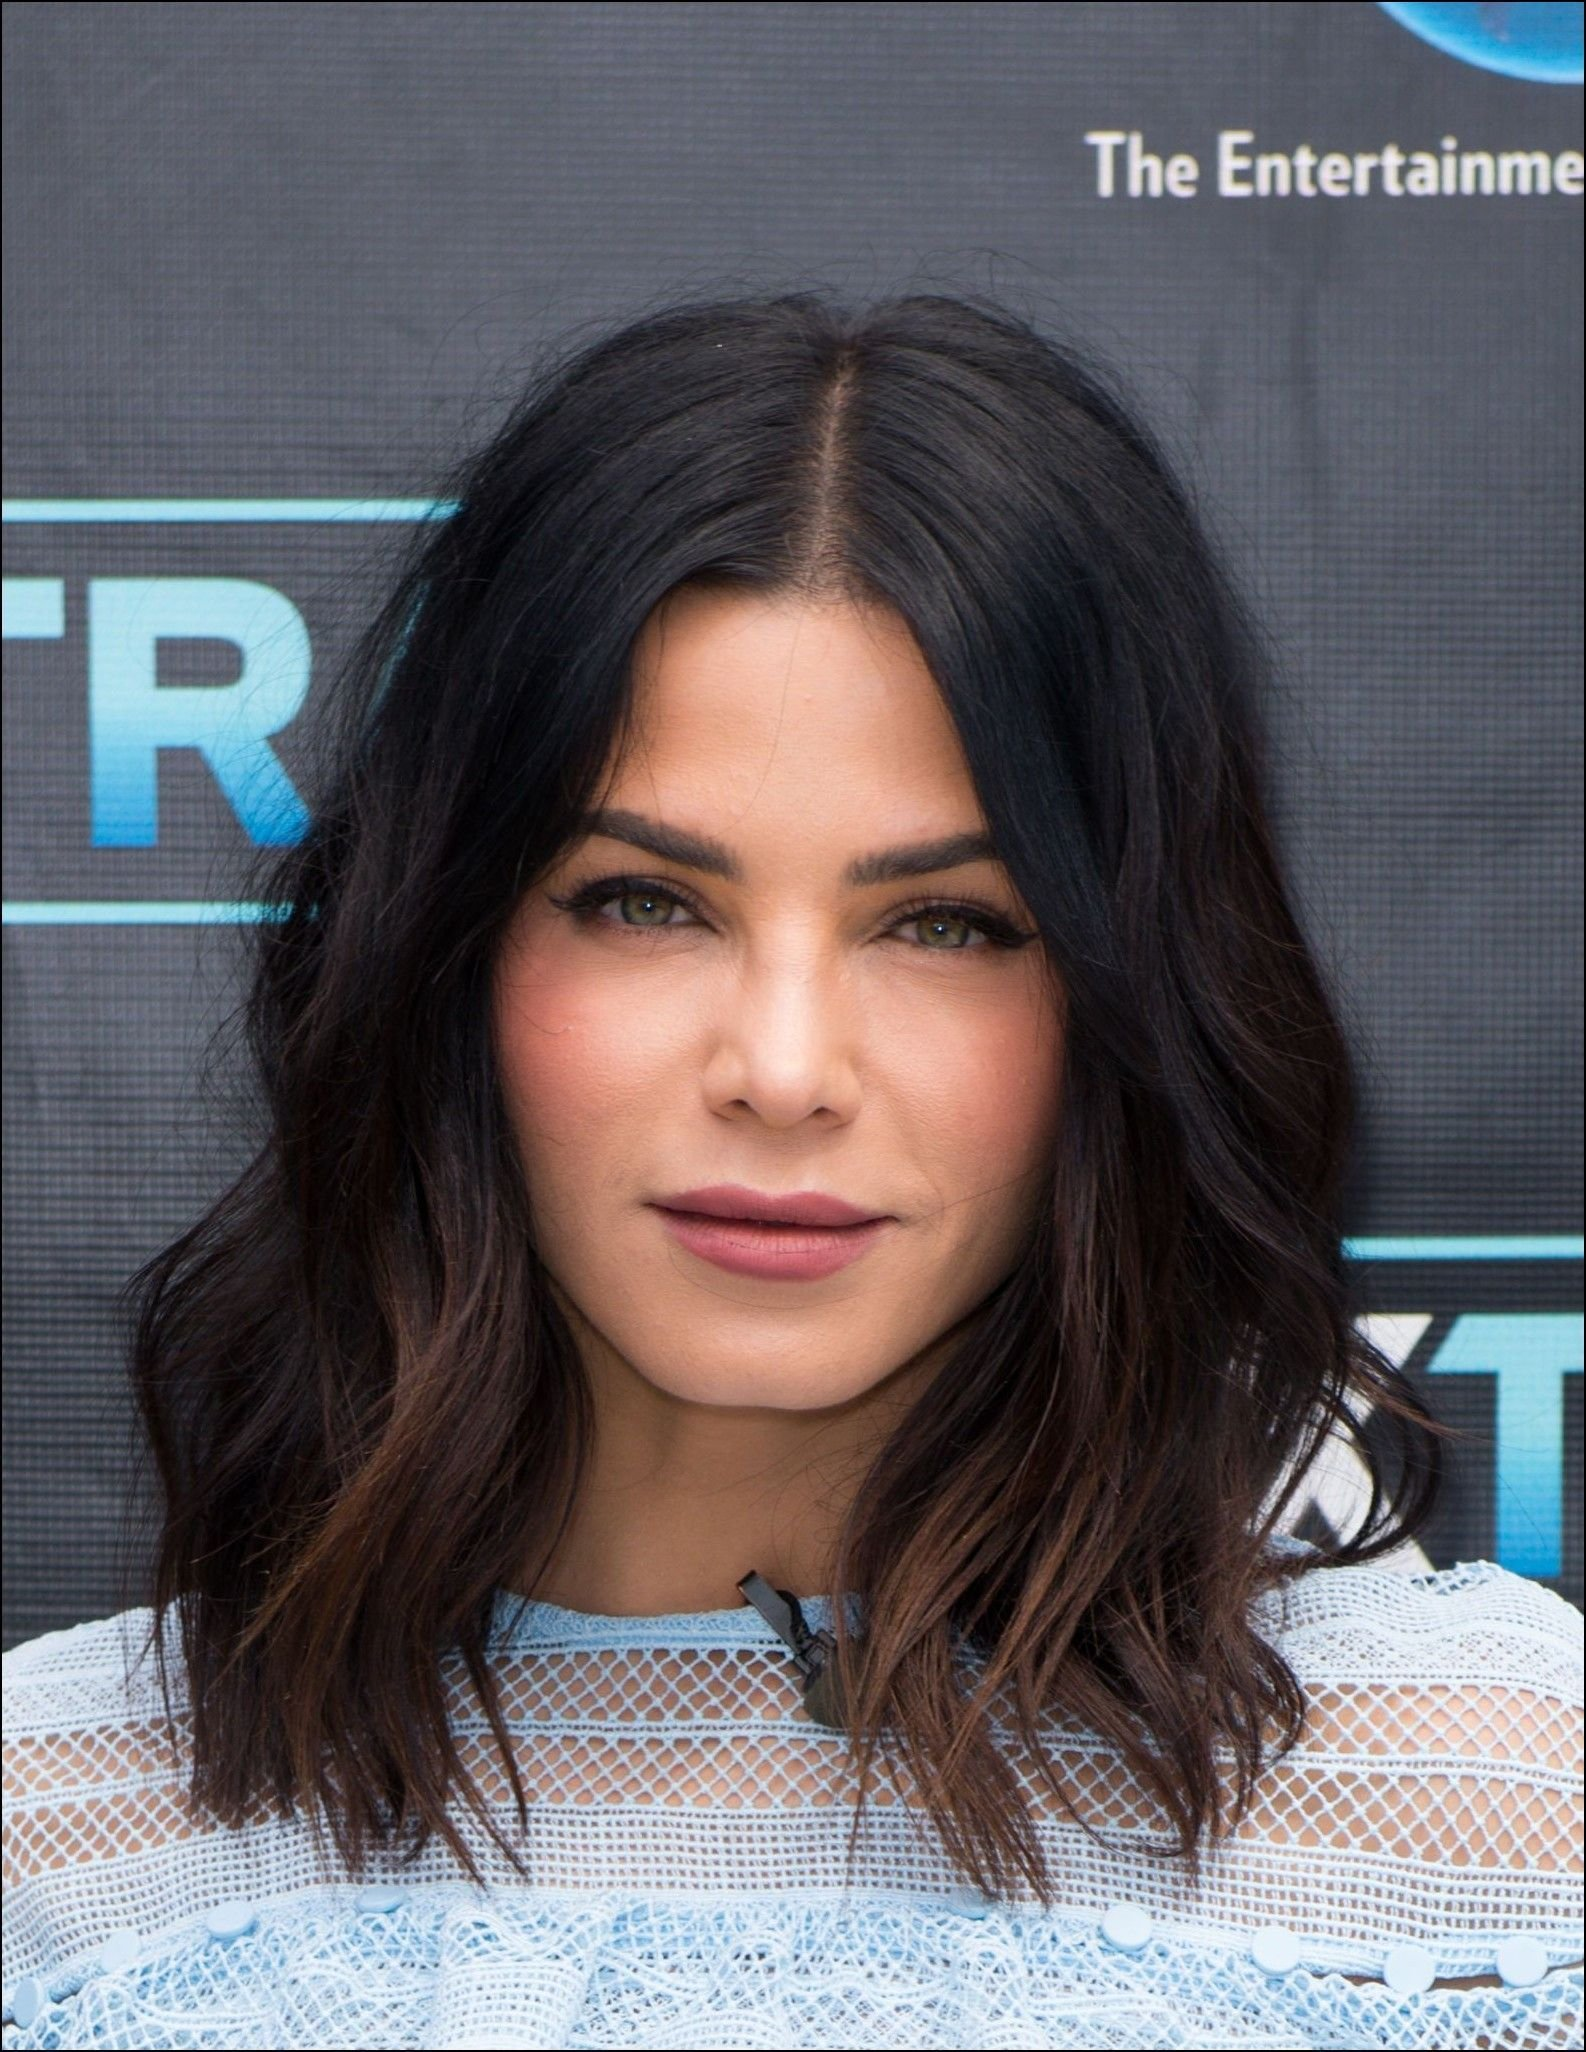 The Best Jenna Dewan Tatum Jenna Dewan Tatum In 2019 Hair Pictures